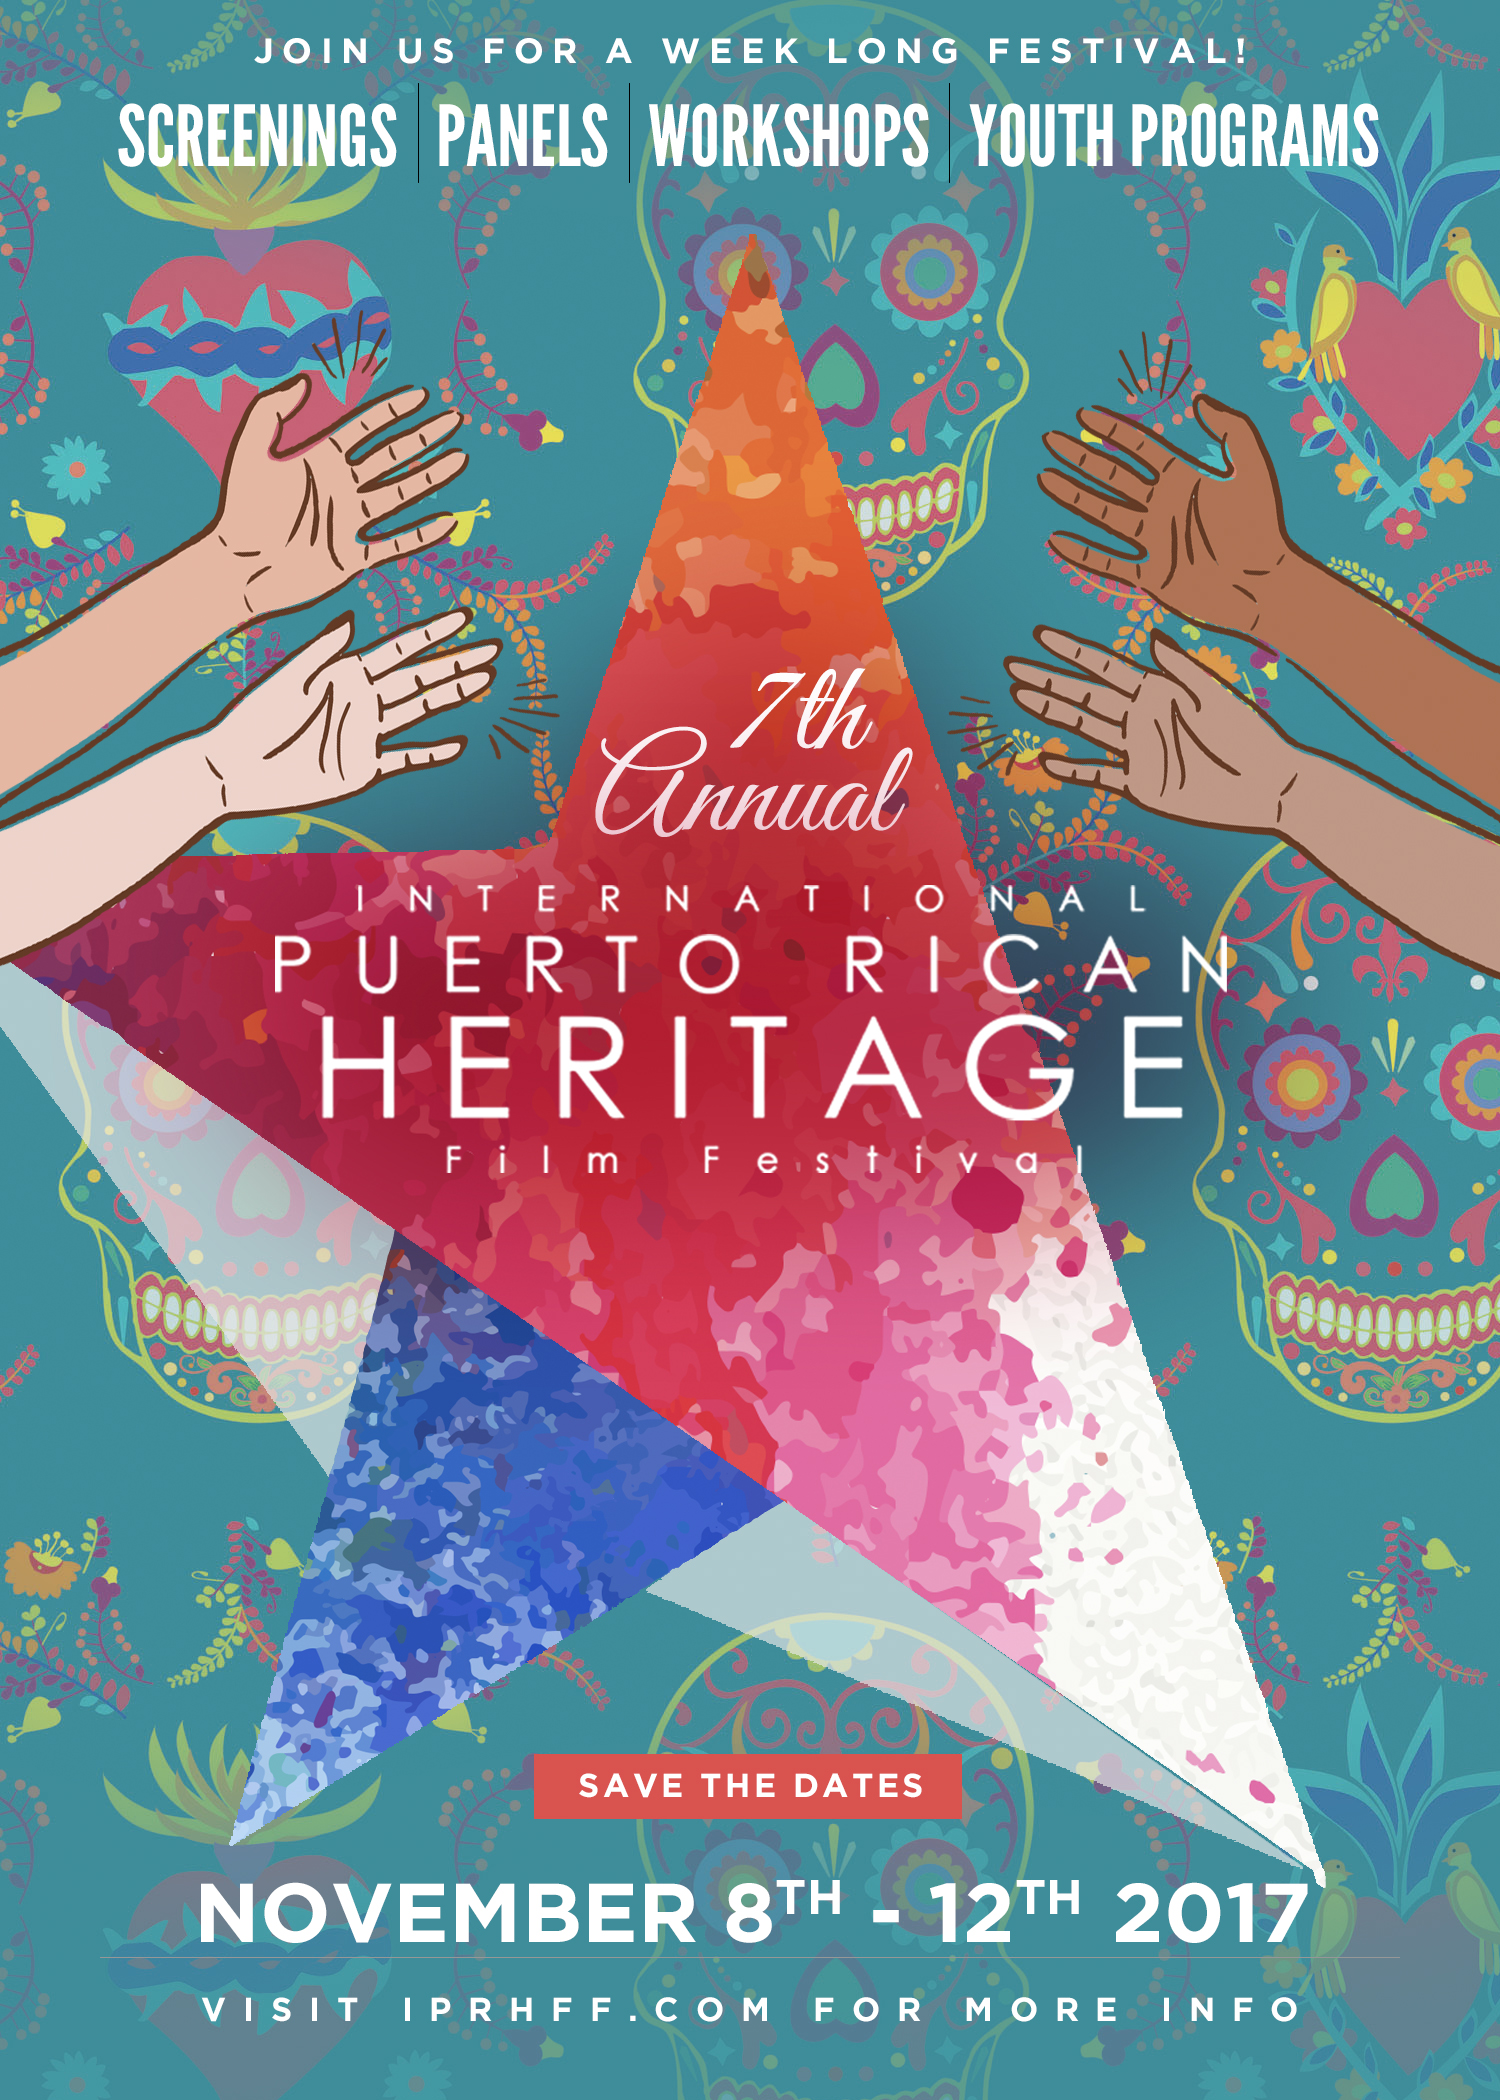 7th Annual International Puerto Rican Heritage Film Festival - One Day Access Passes 11/11